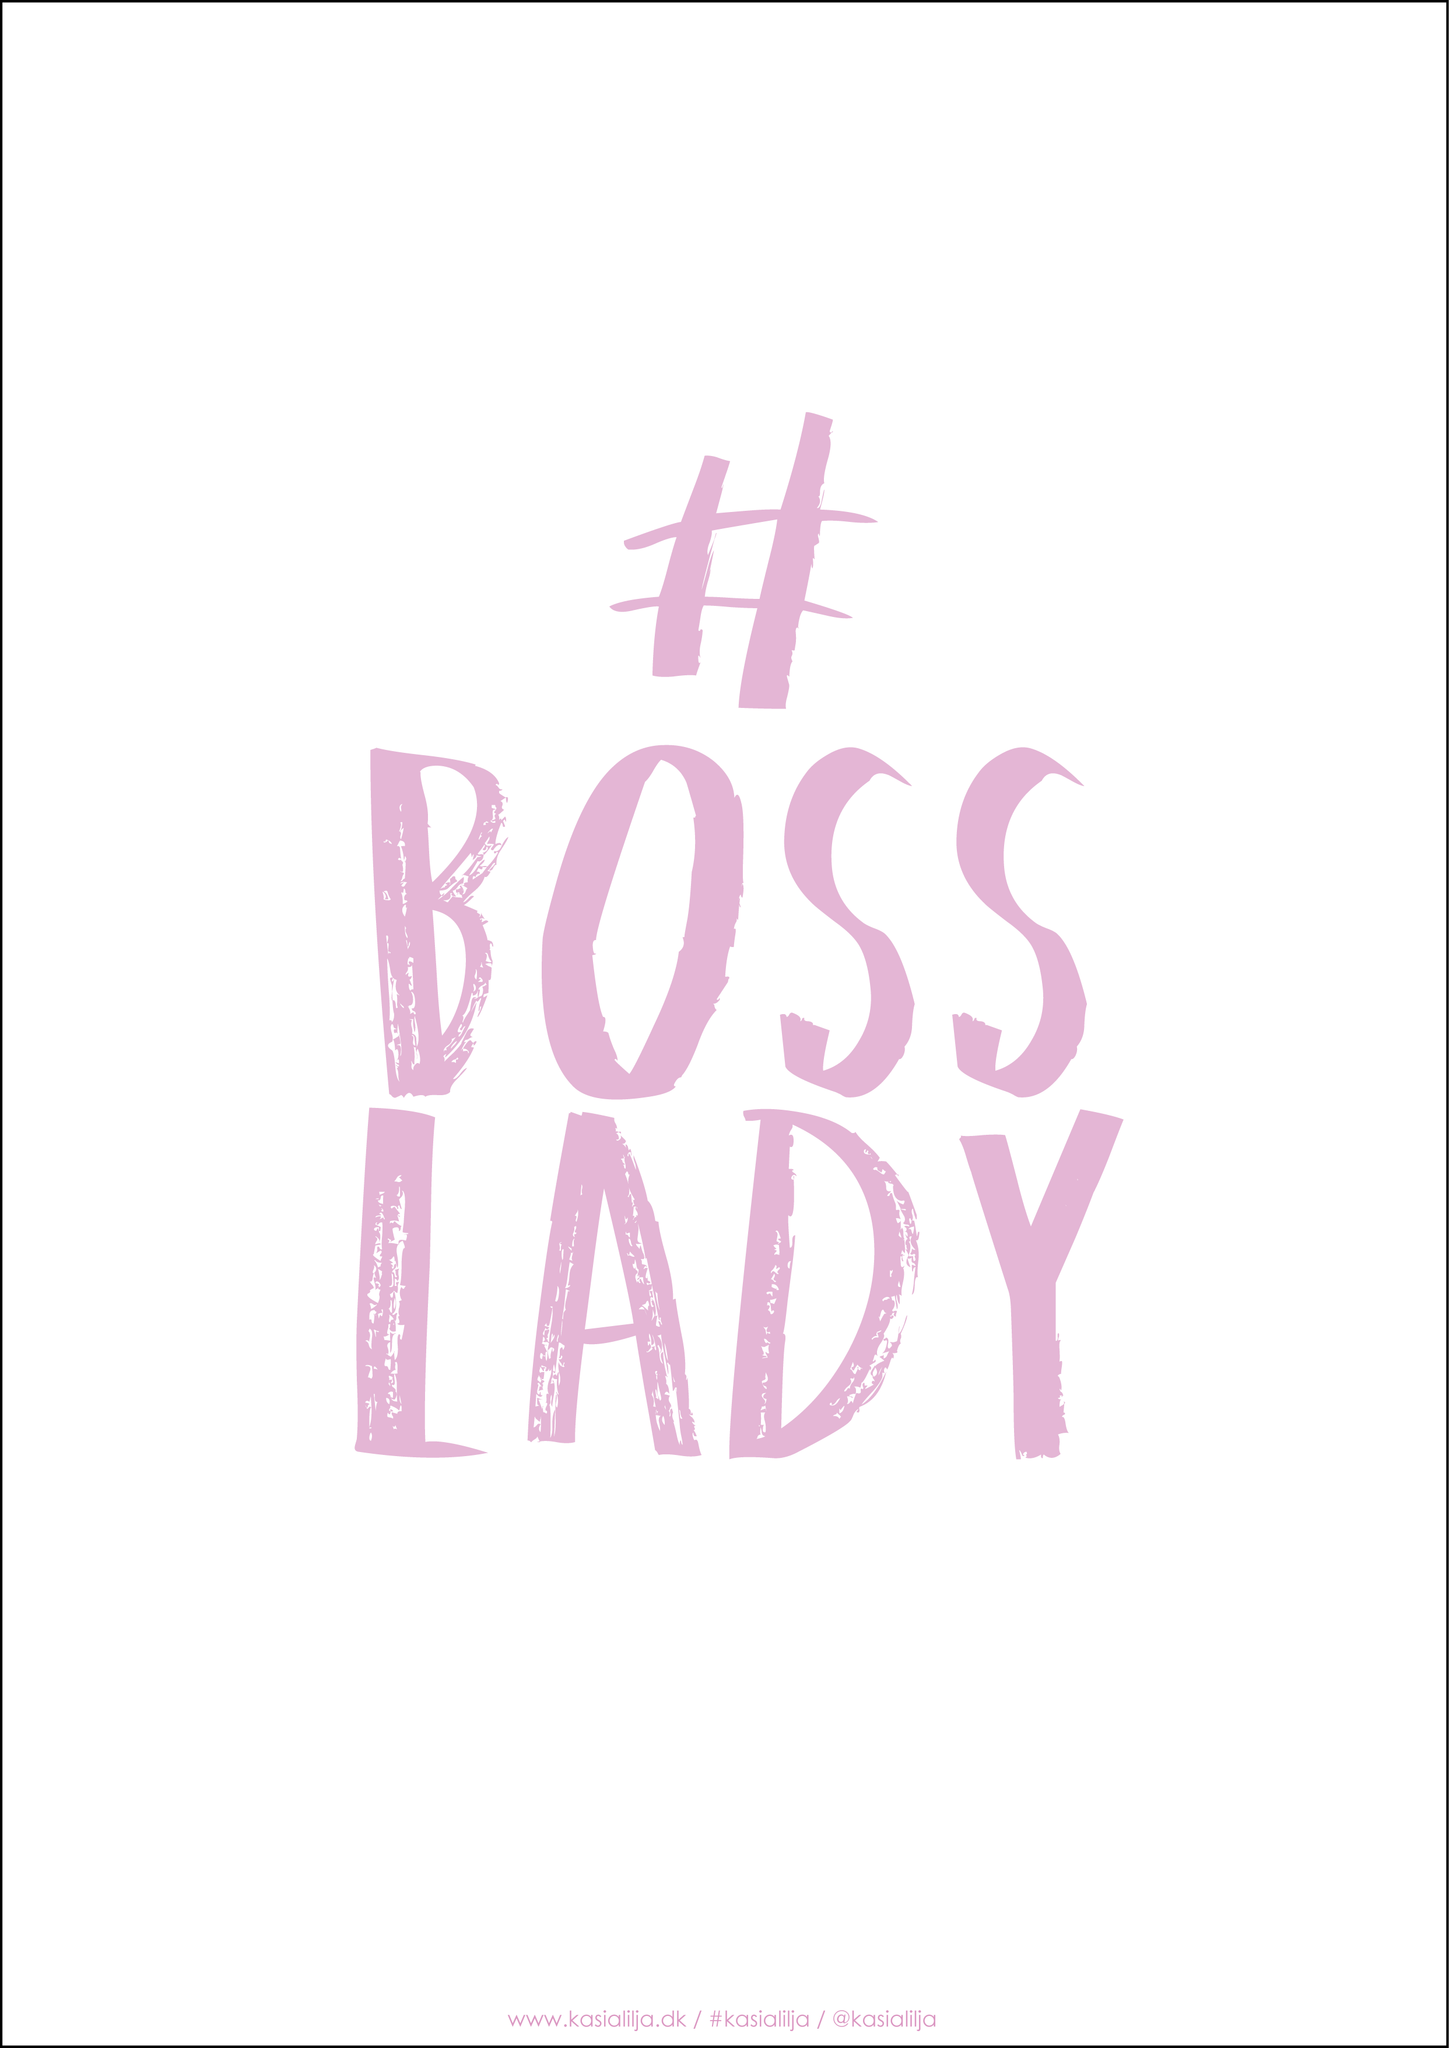 BOSS LADY / Plakat - Pink